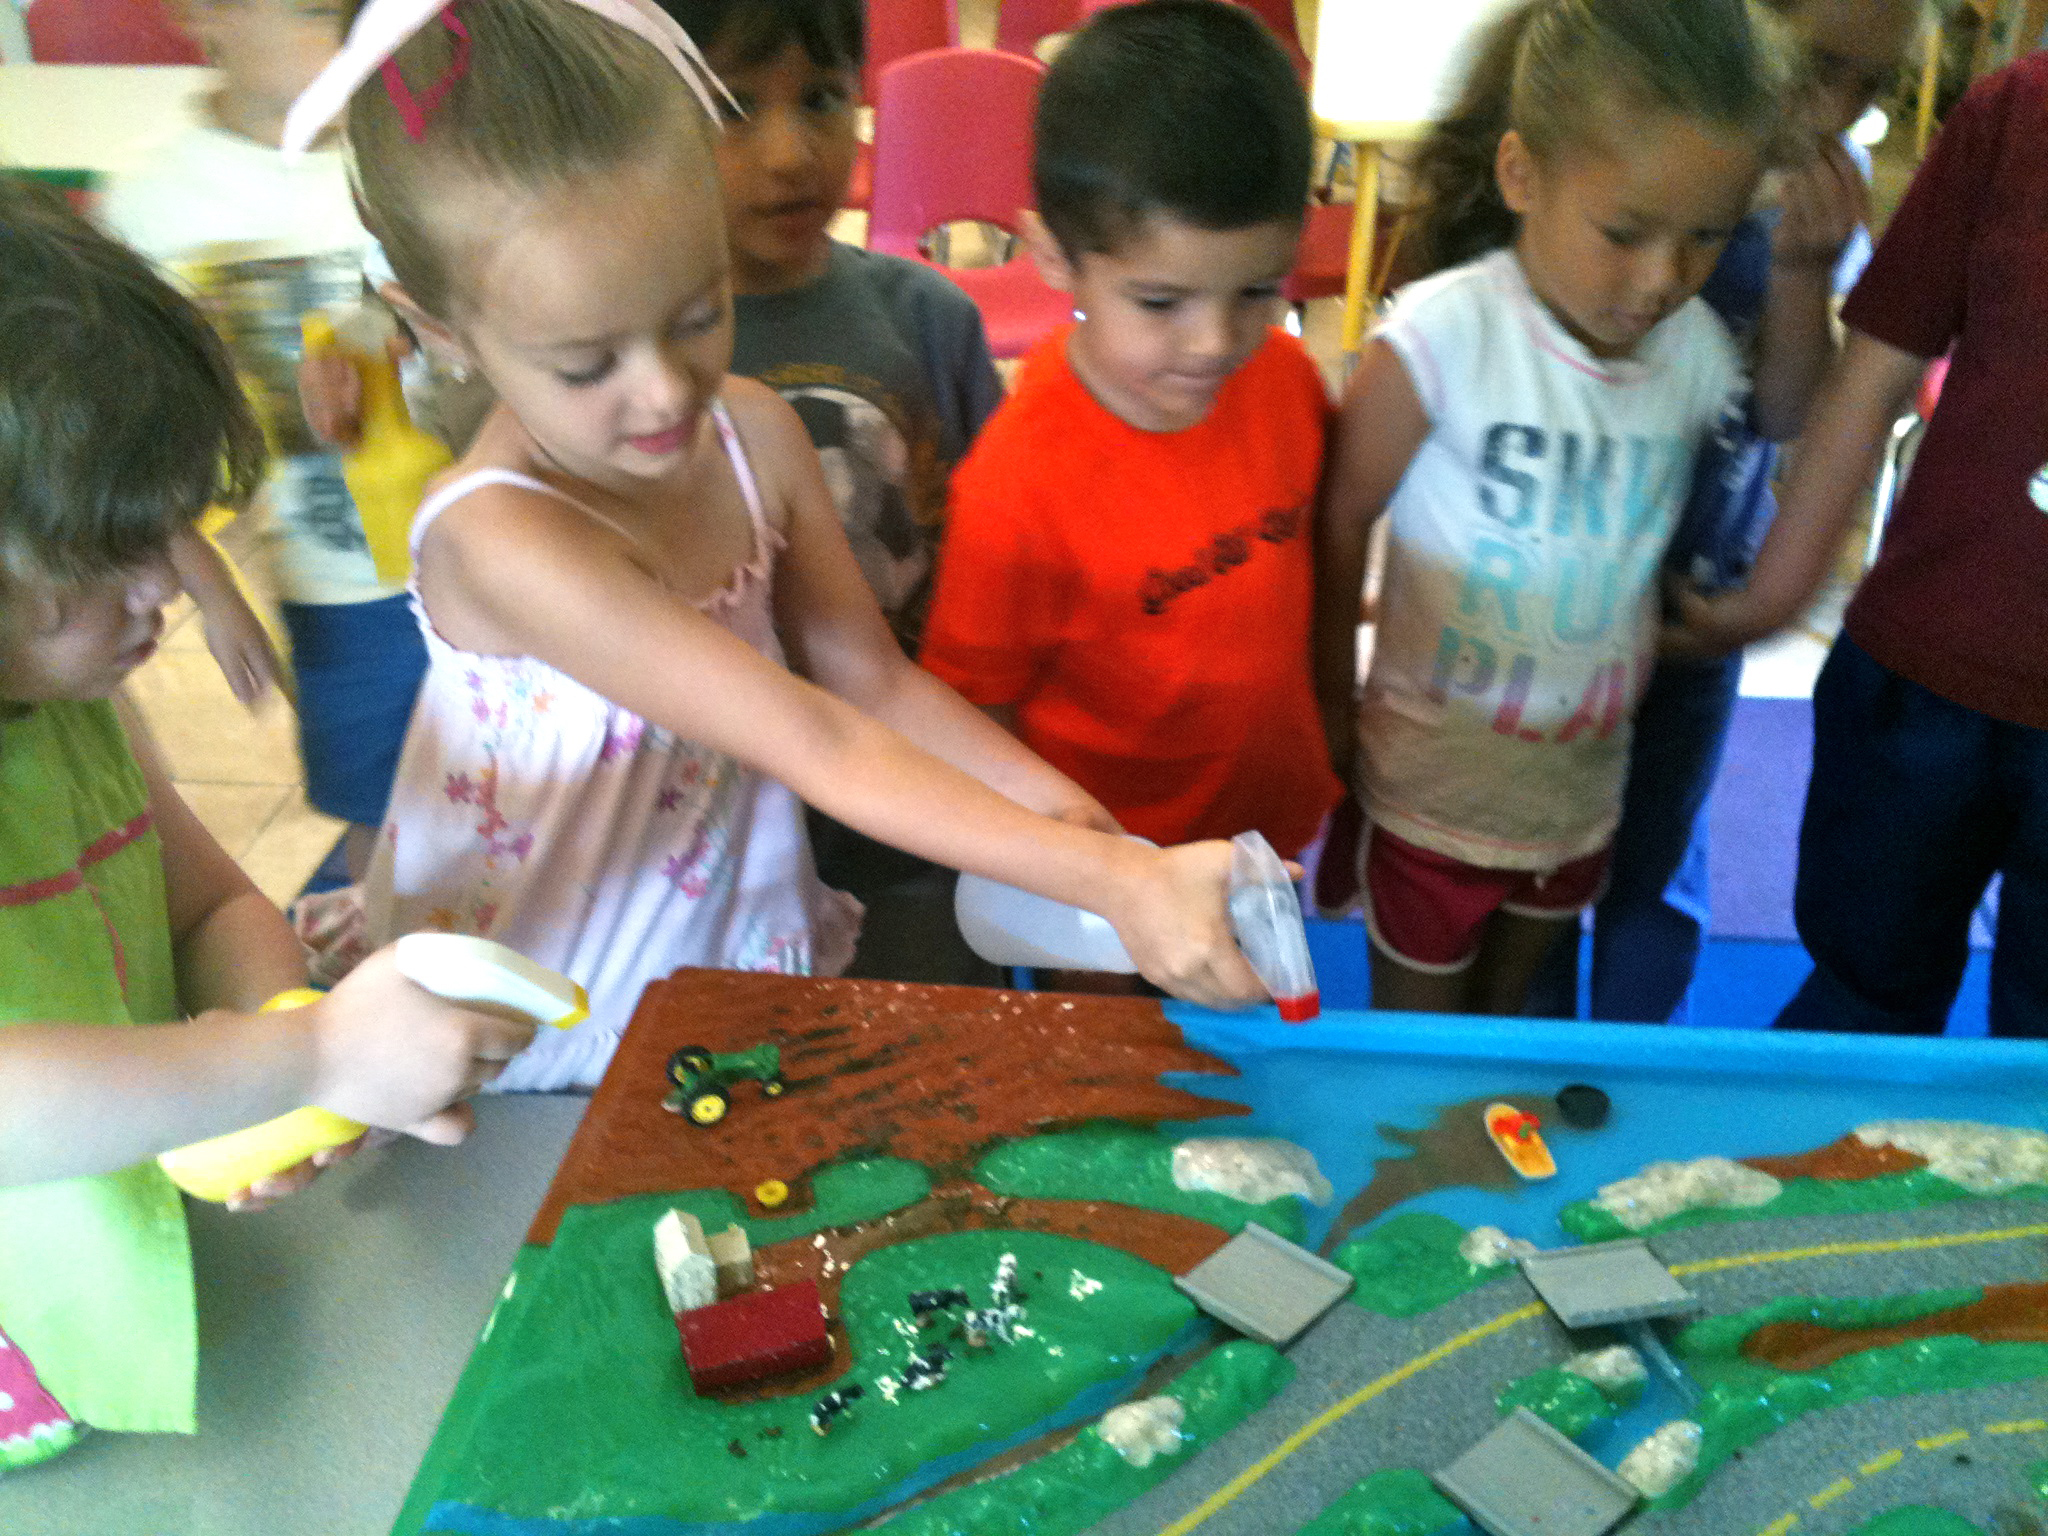 Students explore sources of water pollution using an Enviroscape watershed model during a class visit.